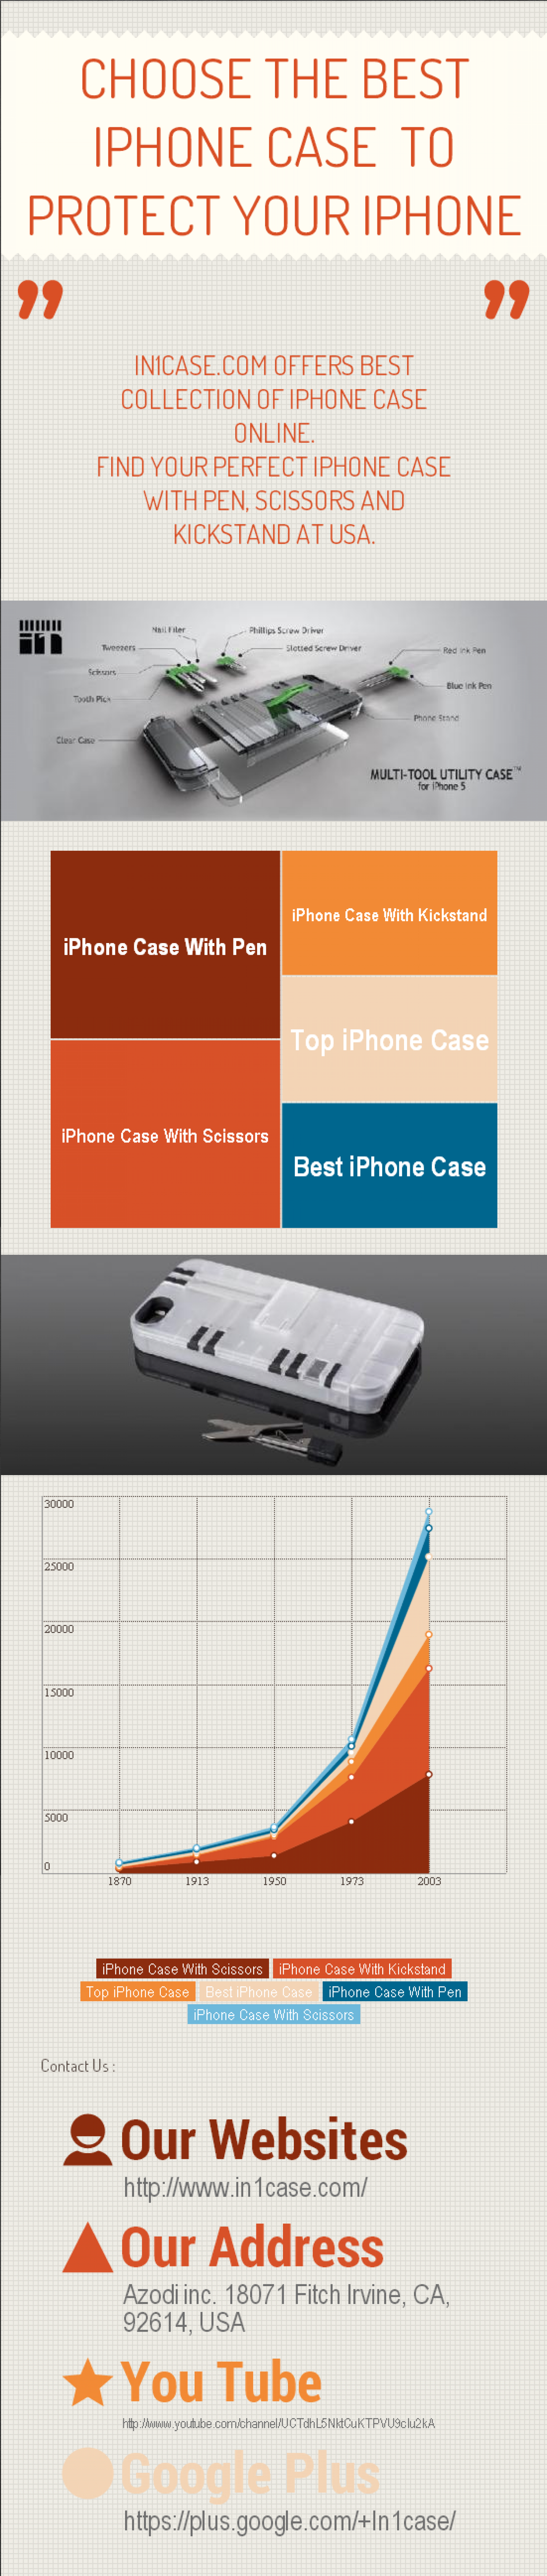 Choose the Best iPhone case  to Protect Your iPhone Infographic